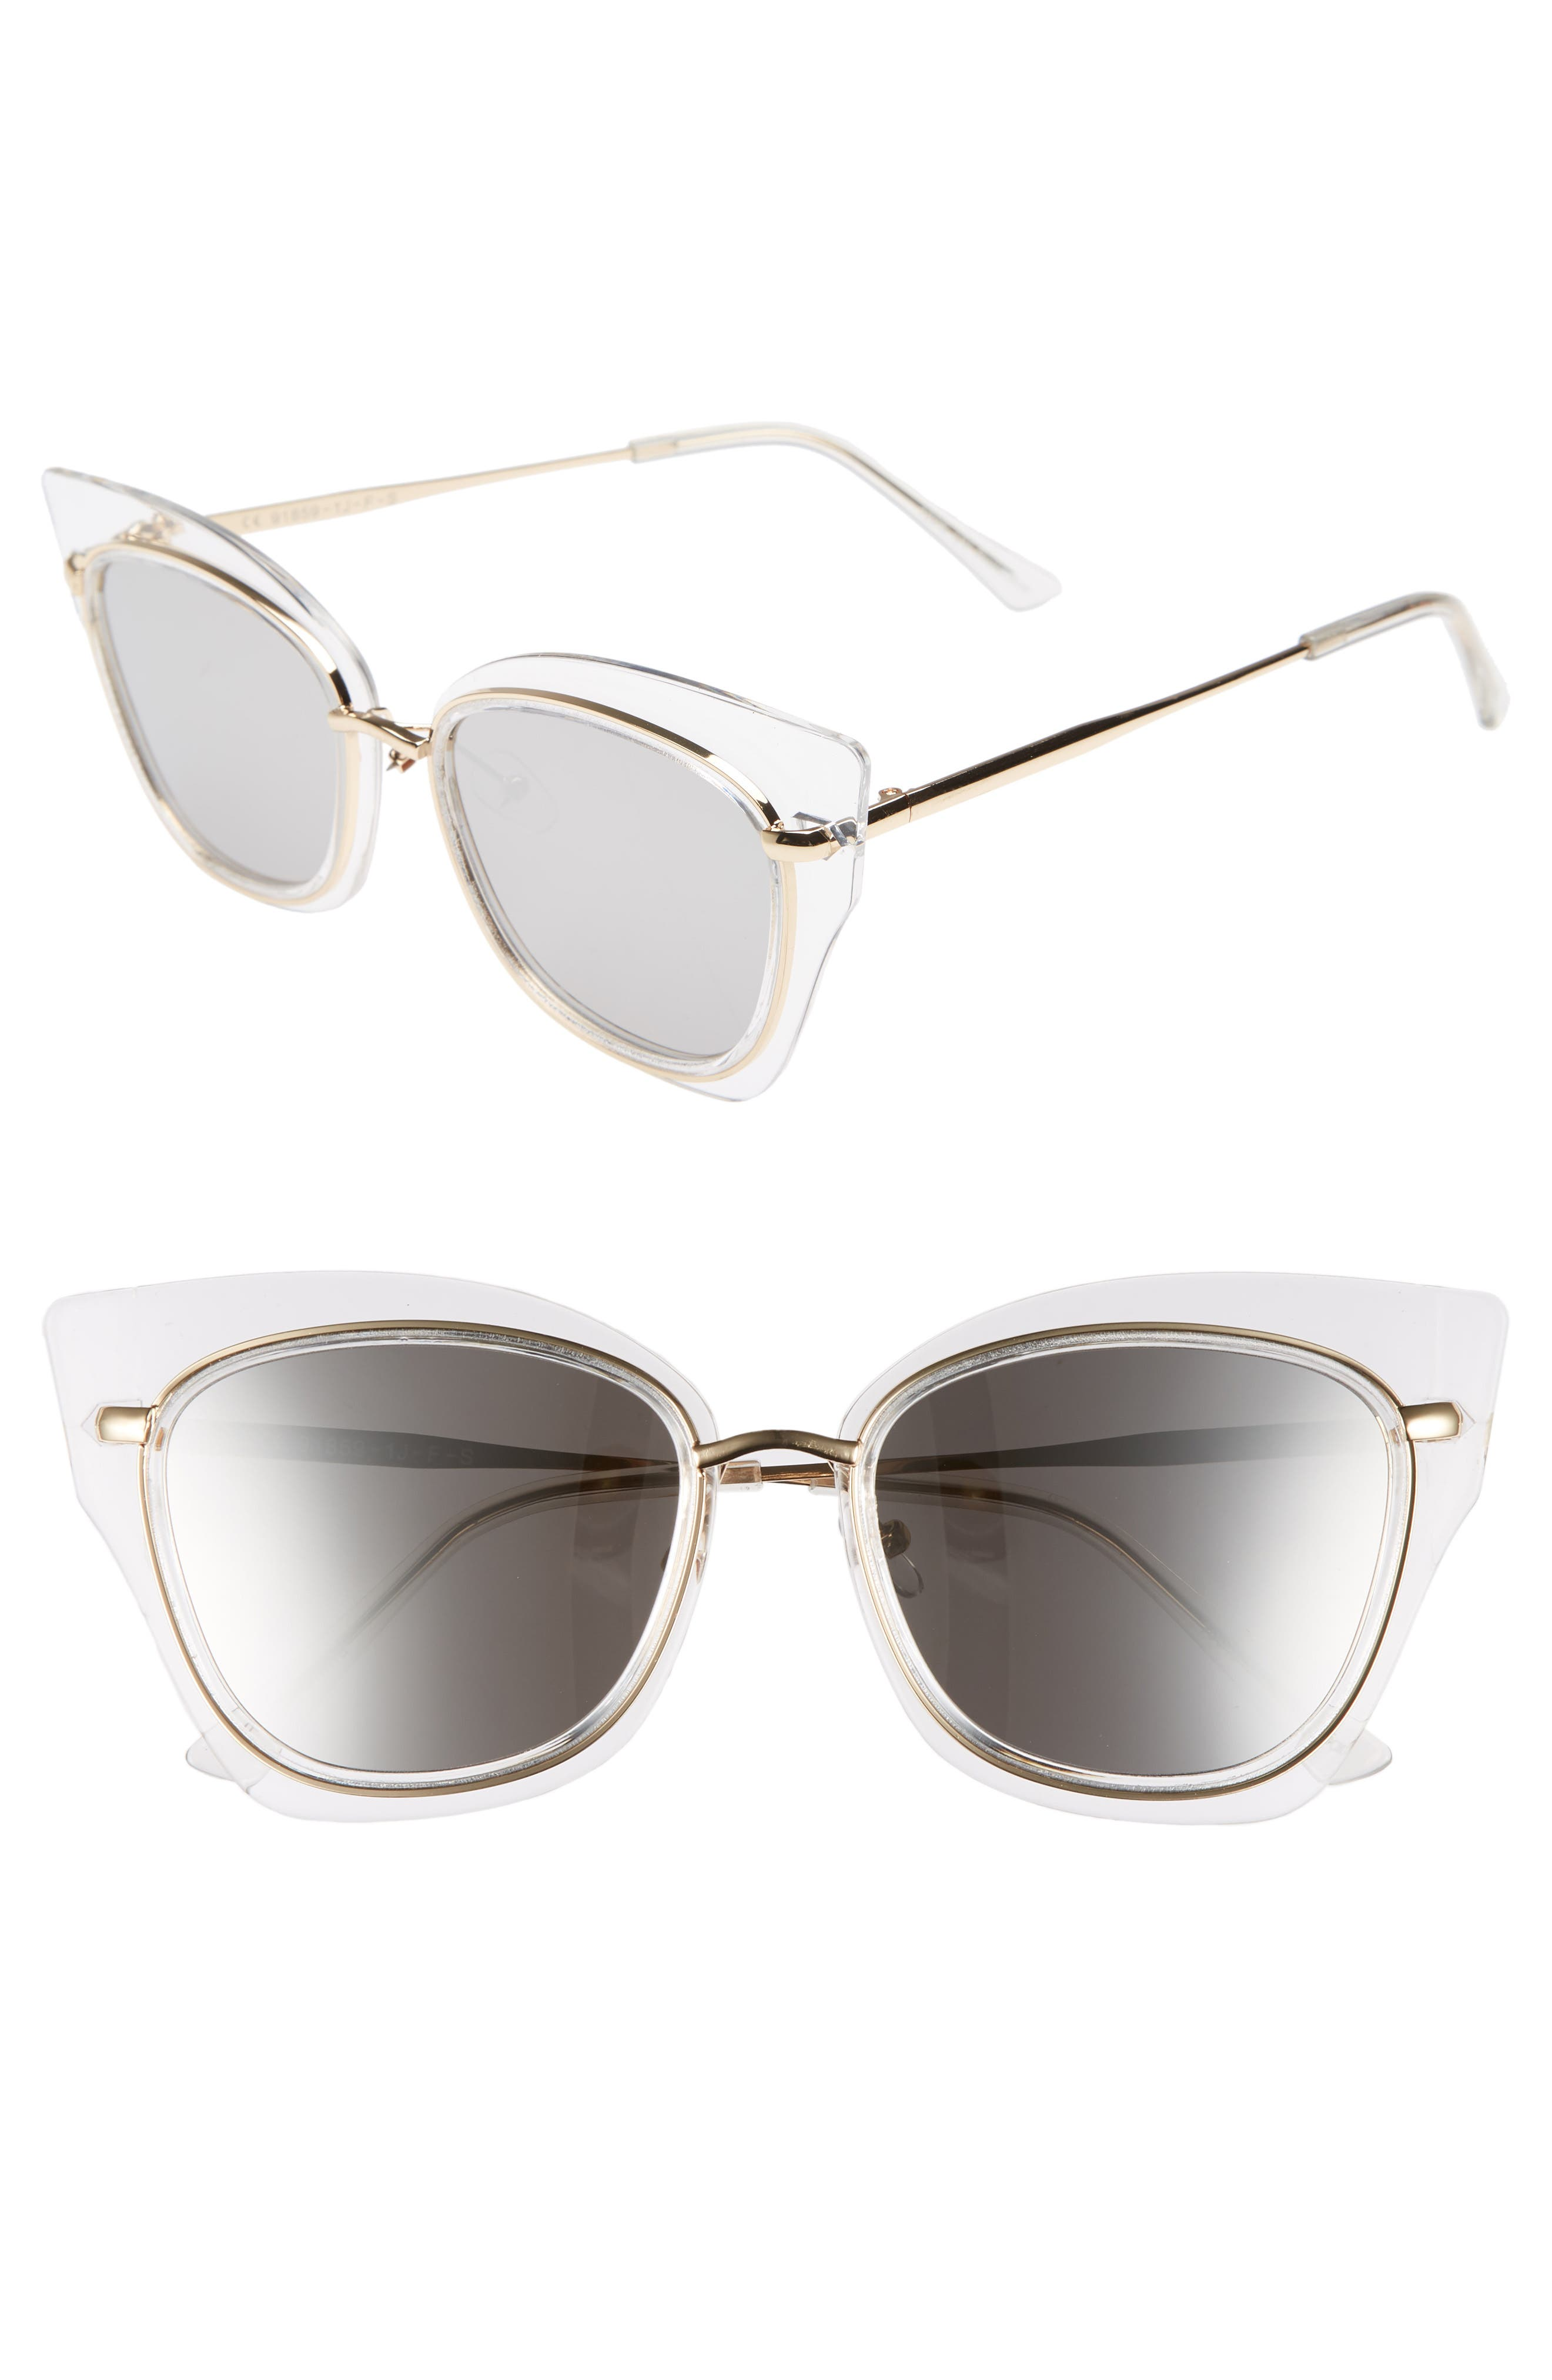 55mm Clear Winged Cat Eye Sunglasses,                             Main thumbnail 1, color,                             Clear/ Gold